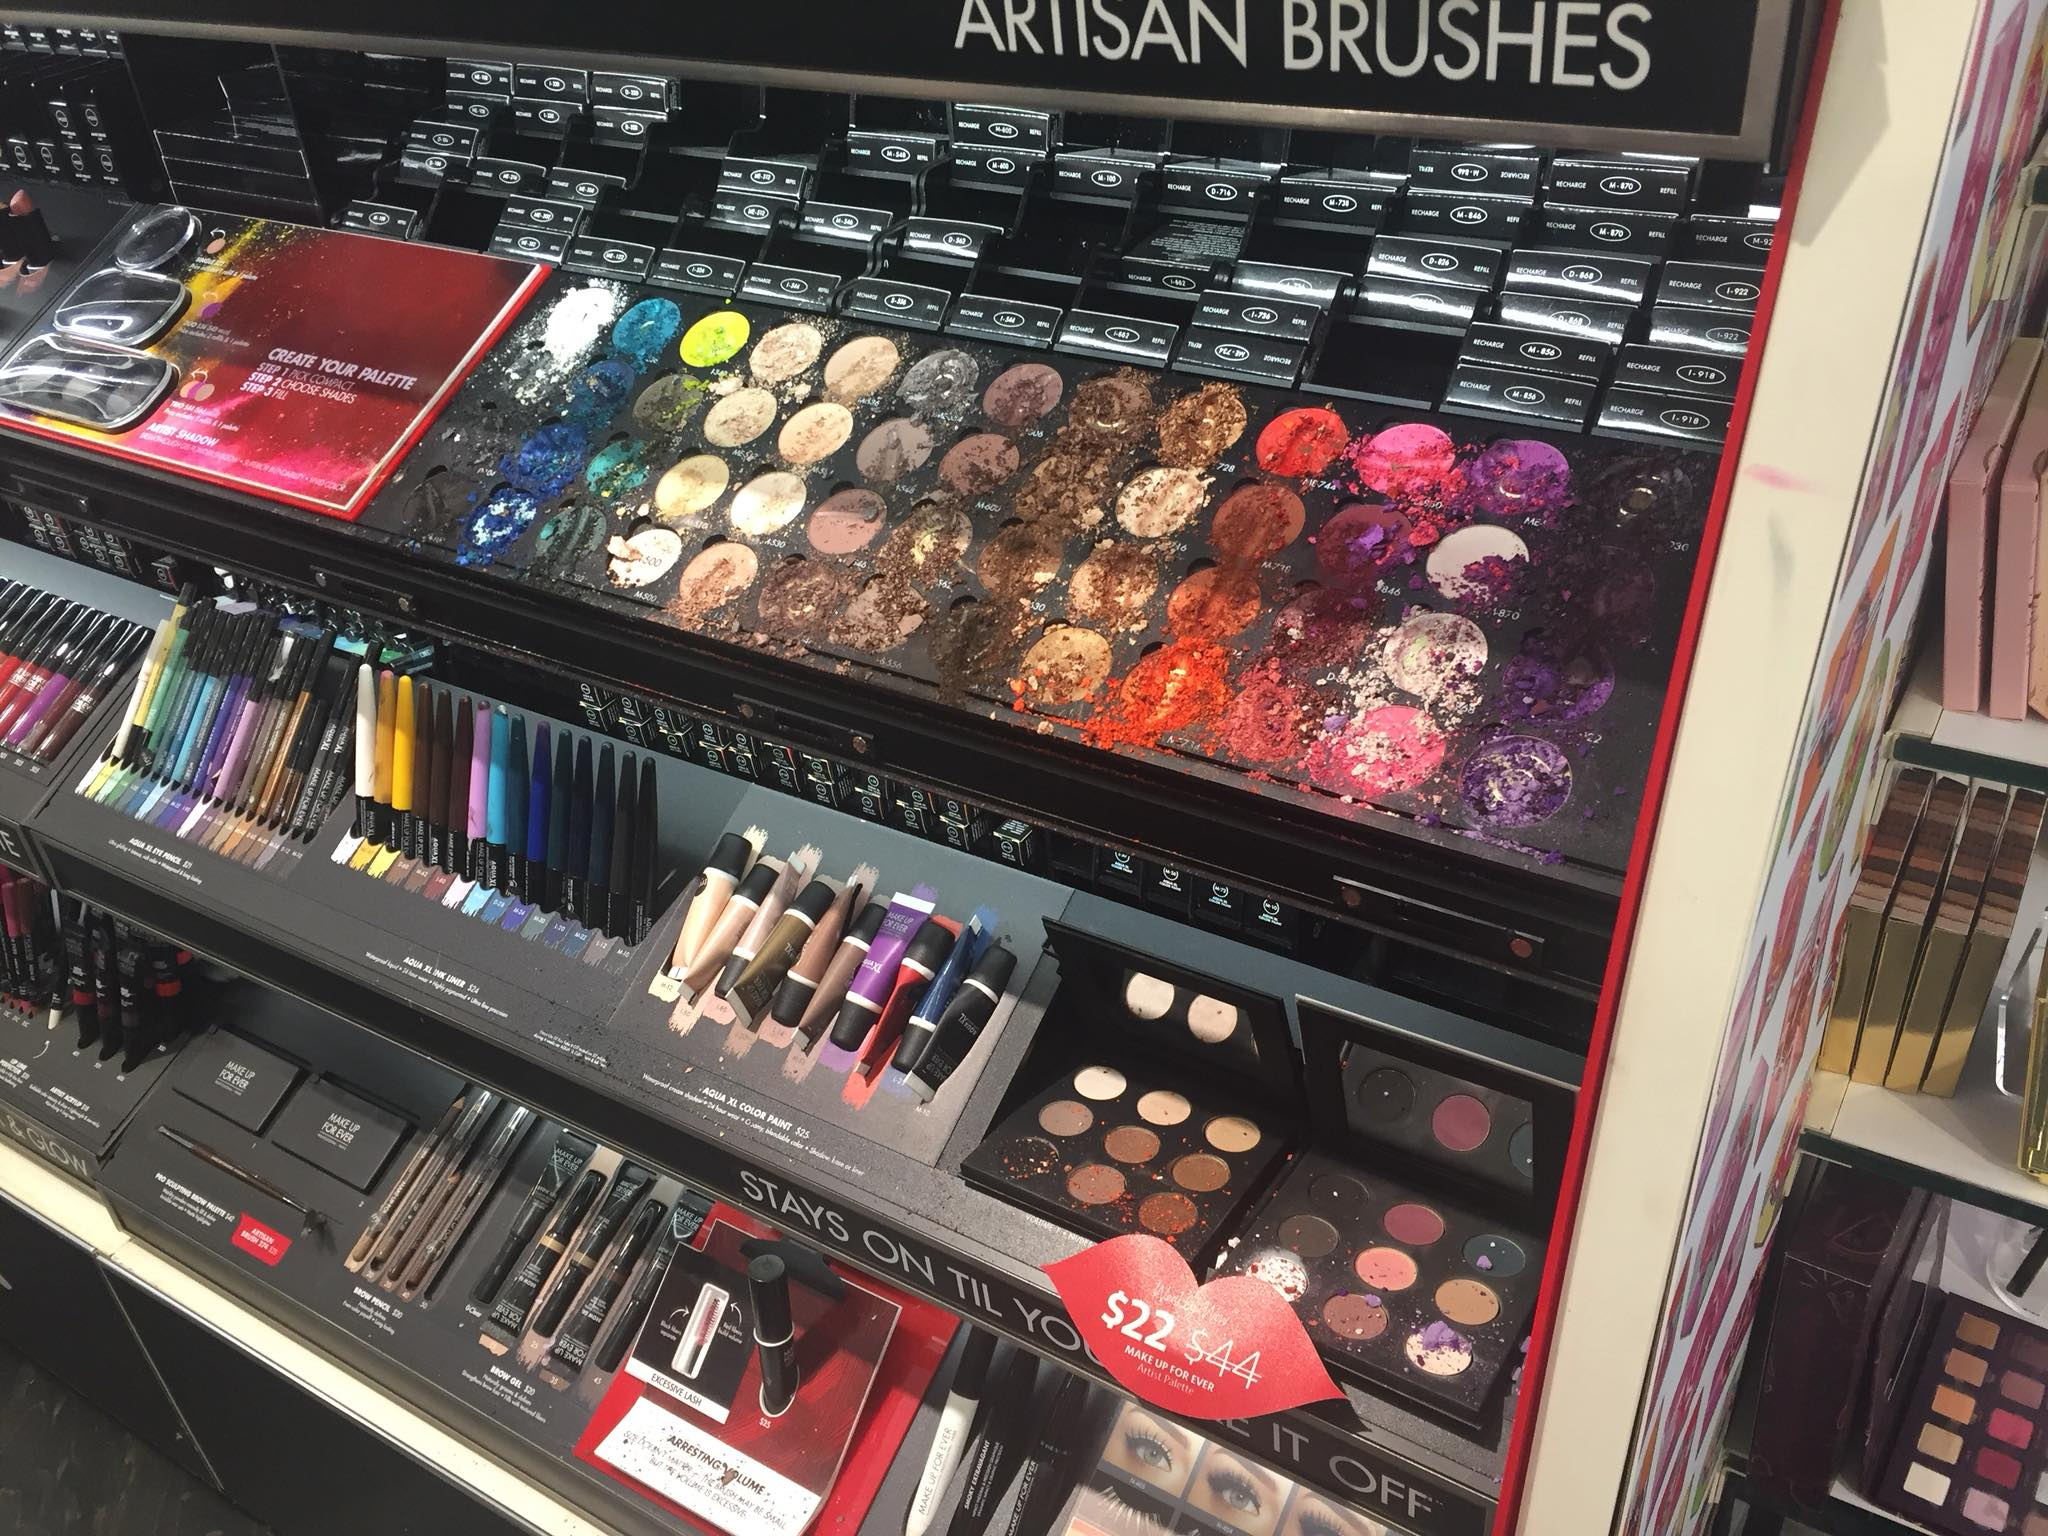 Child demolishes €1100 worth of makeup in Sephora store